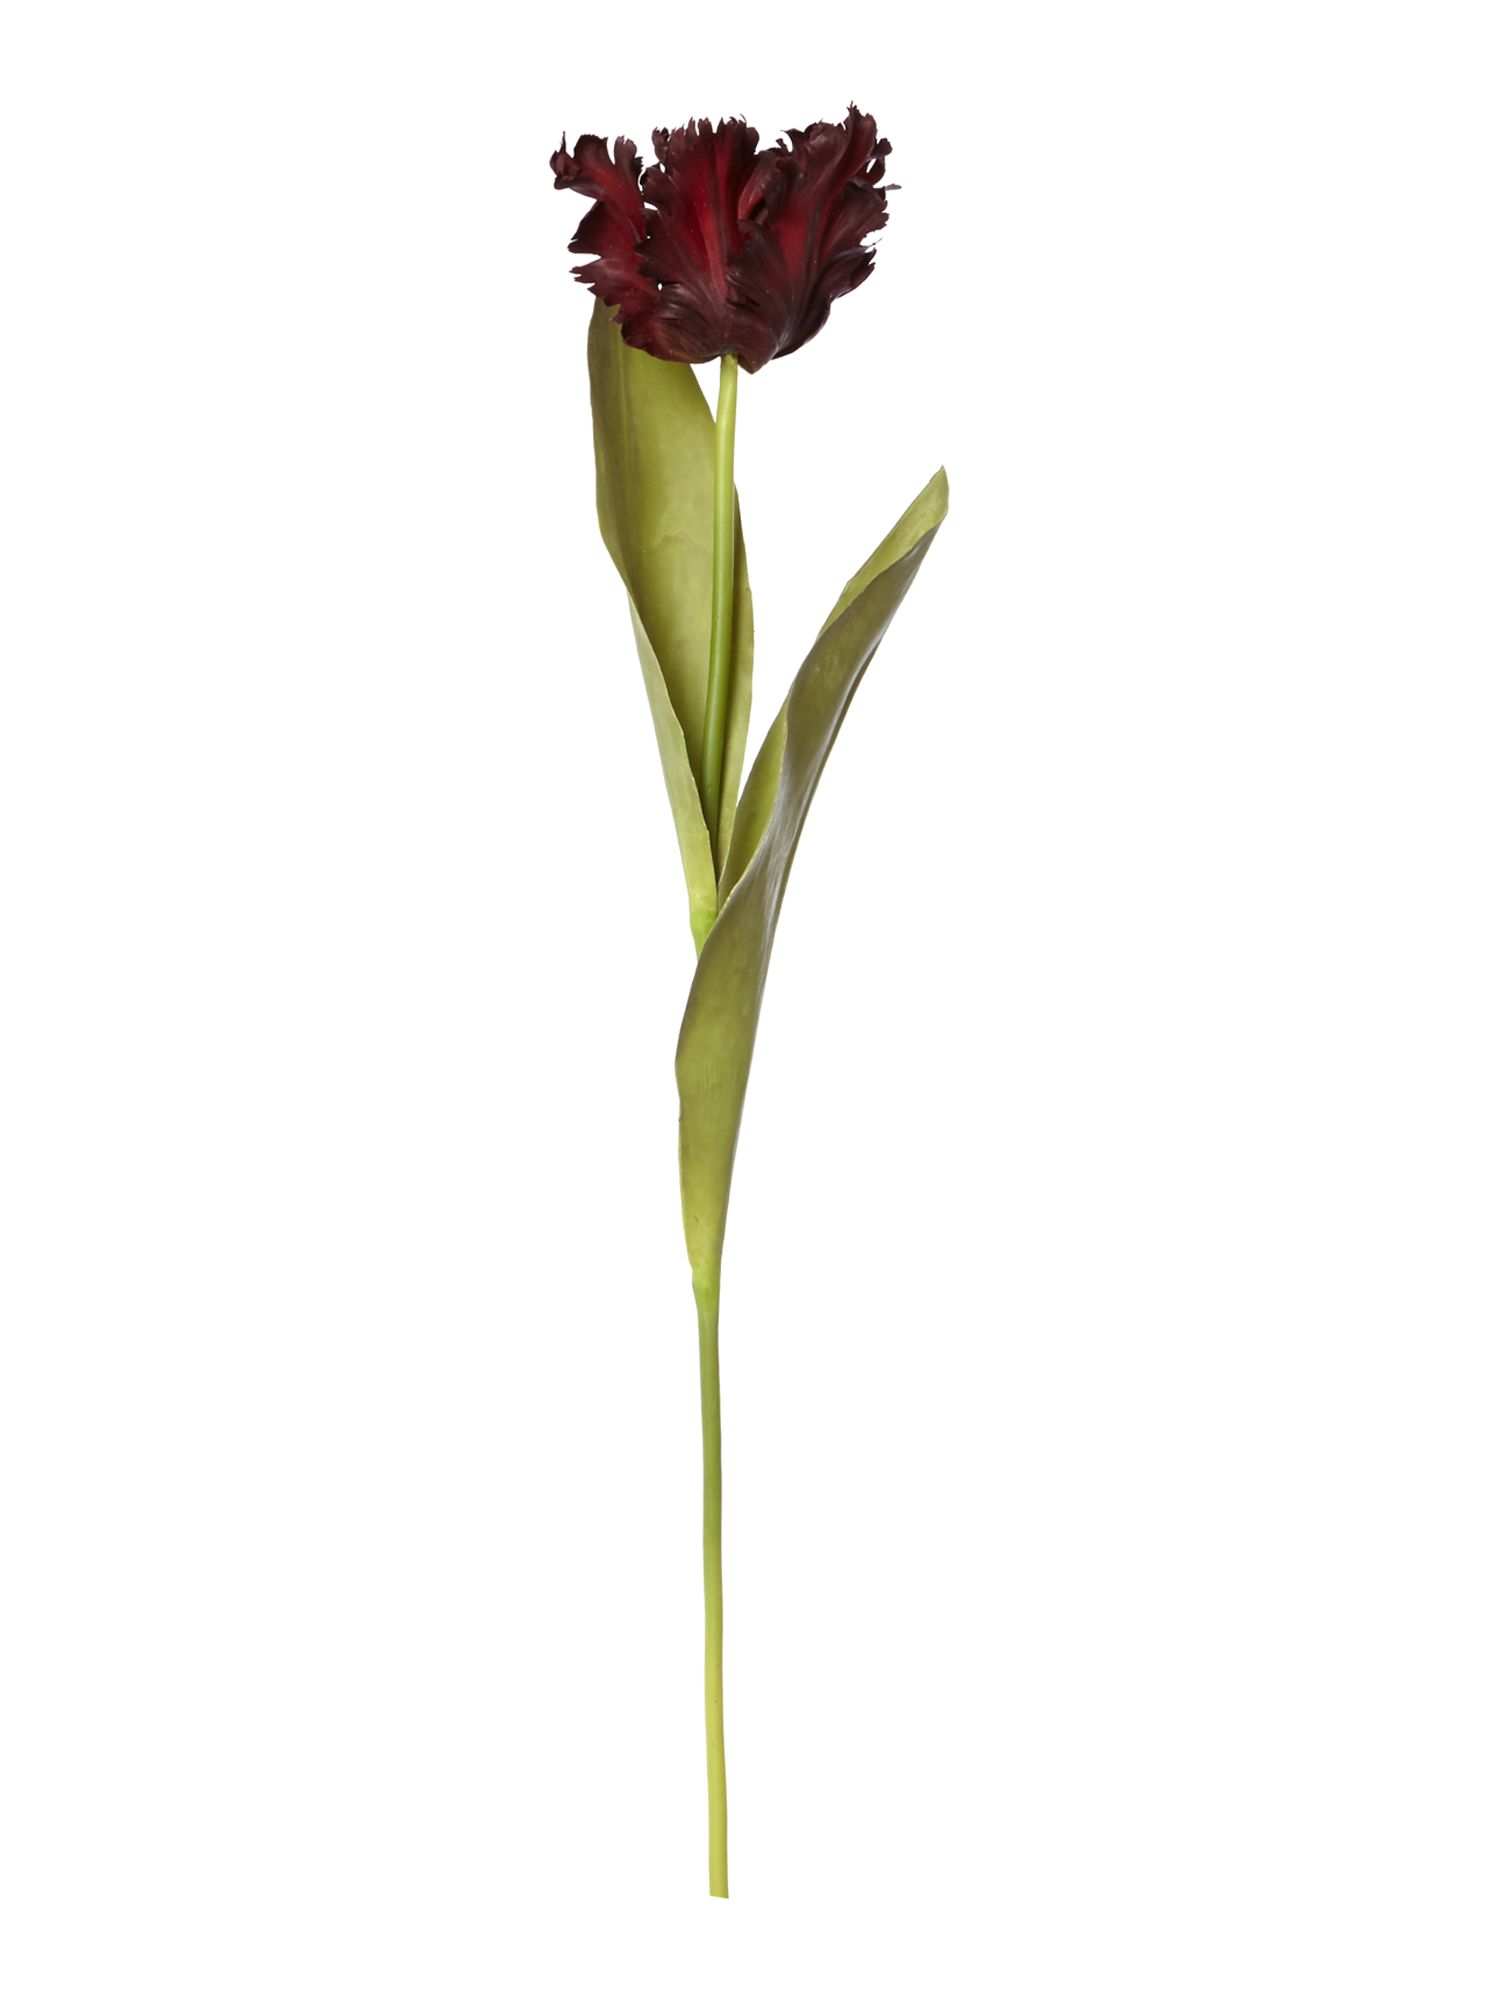 Linea Burgundy parrot tulip single stem